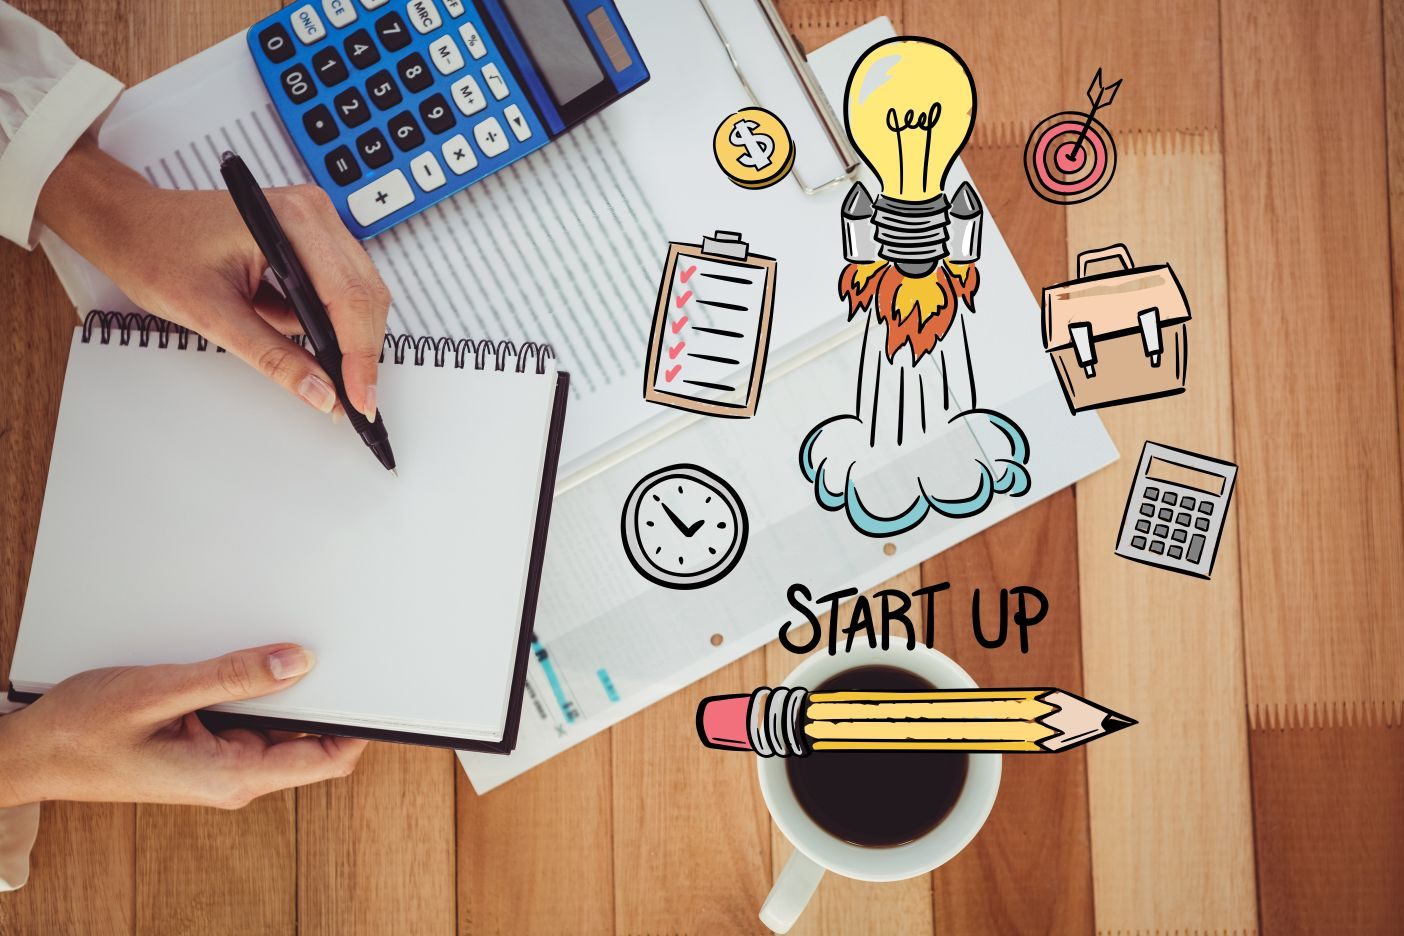 20-Expert-Ideas-to-Make-Sure-Your-Start-Up-avoid-Failure.